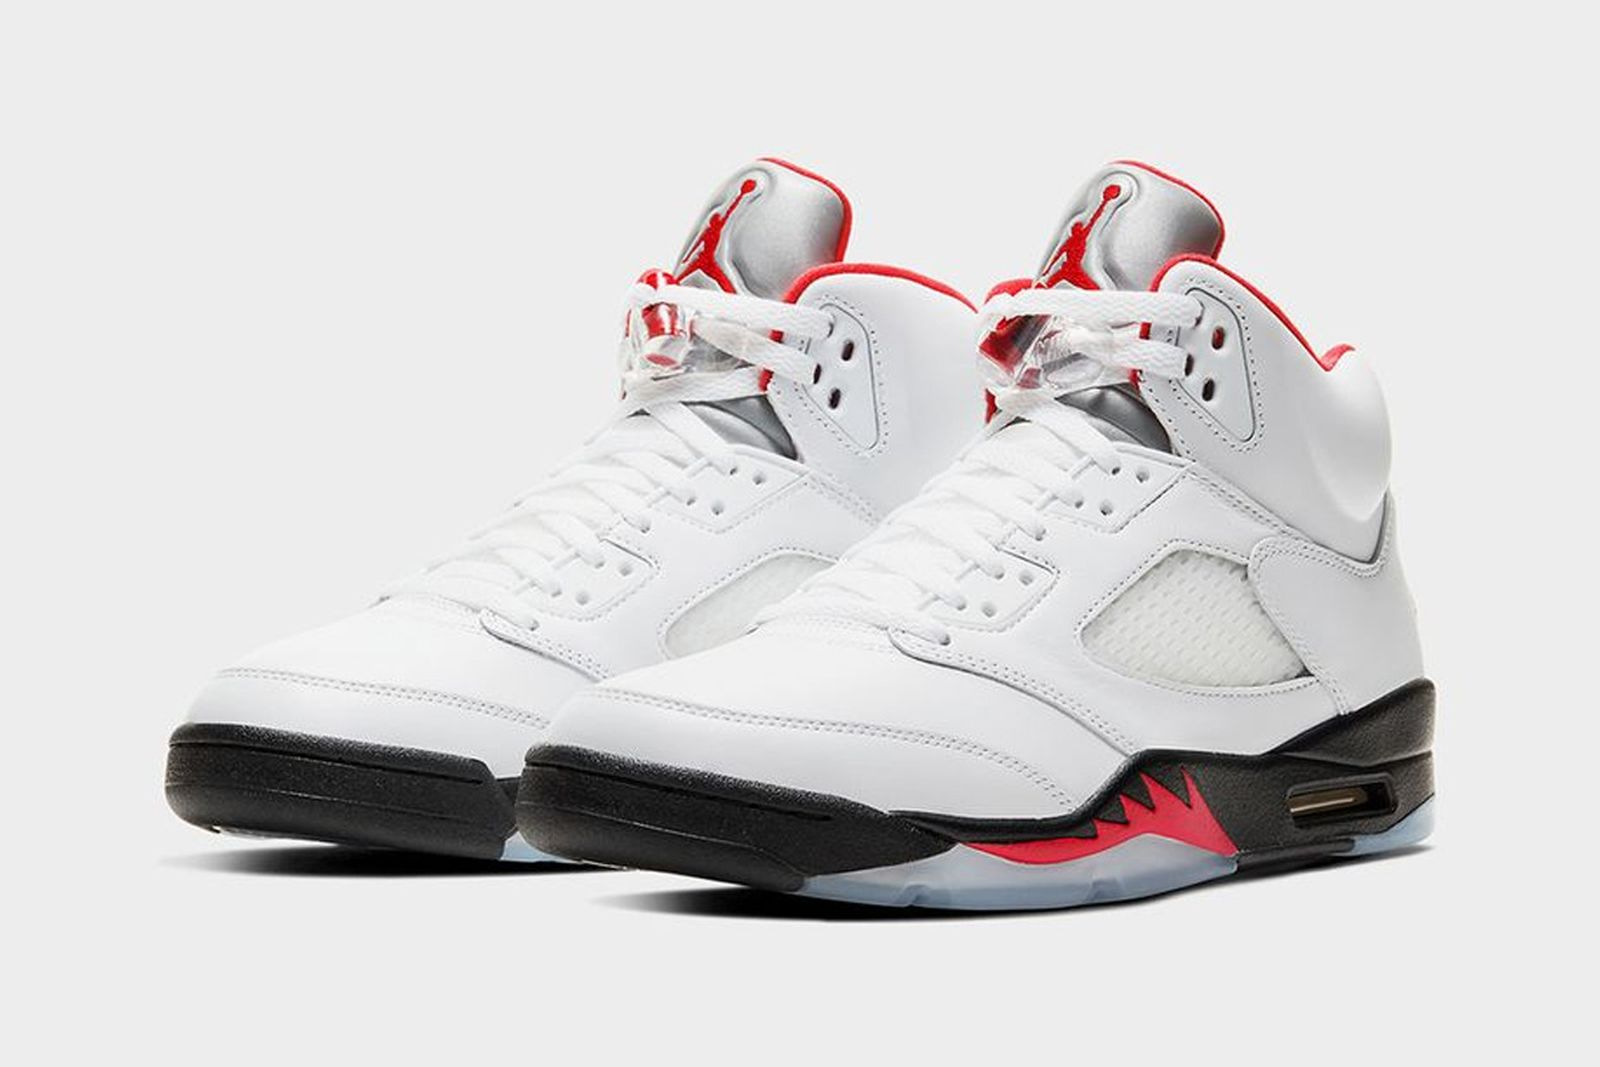 nike-air-jordan-5-fire-red-release-date-price-official-03